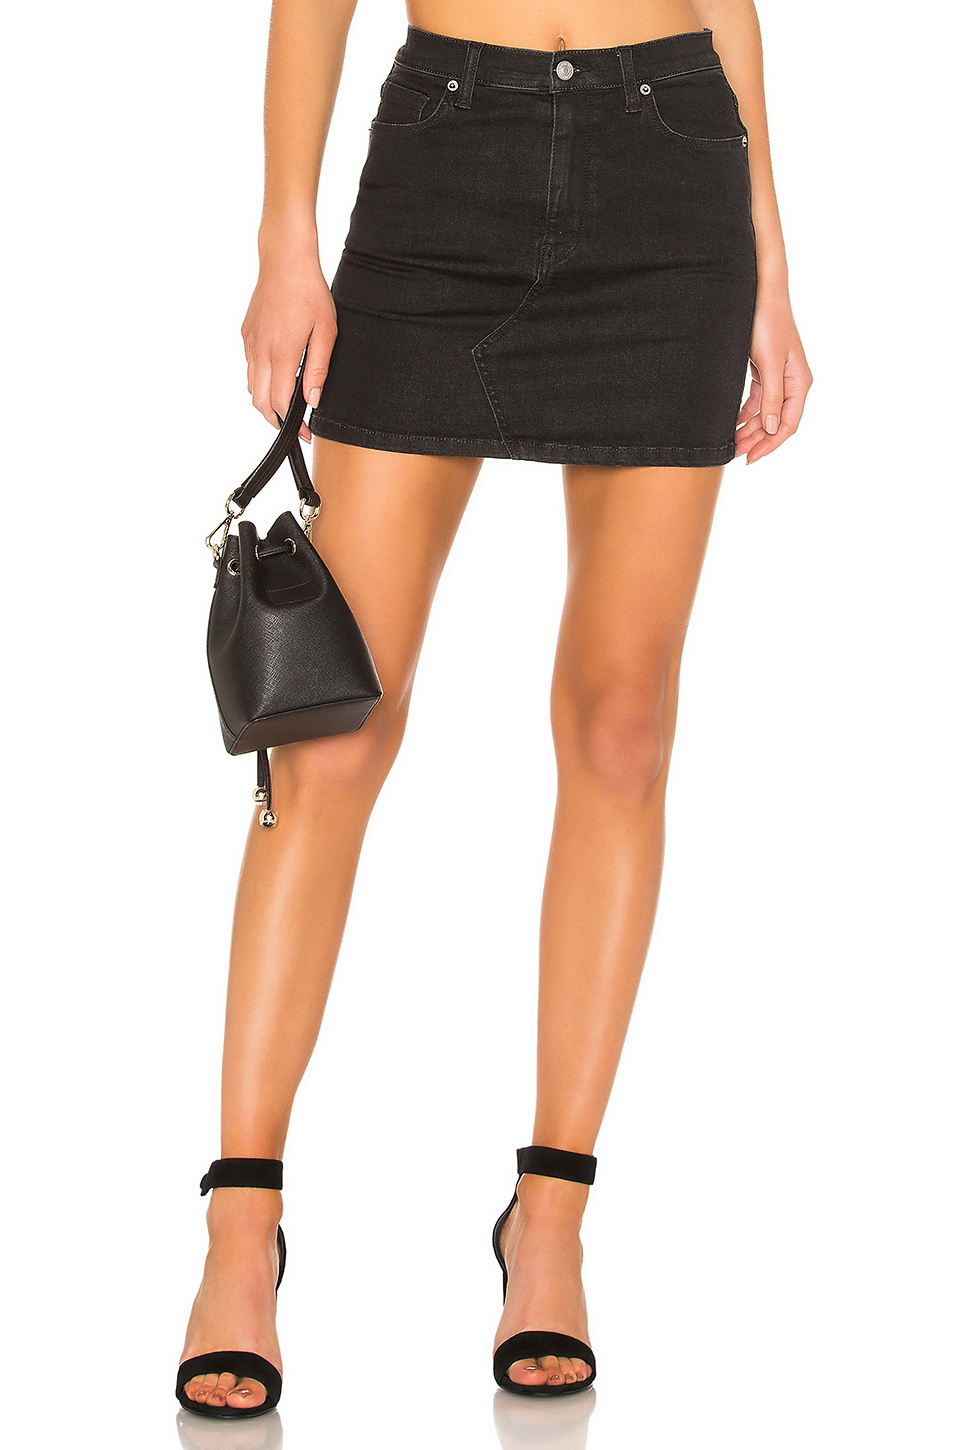 Free People Teagan Denim Skirt in Black